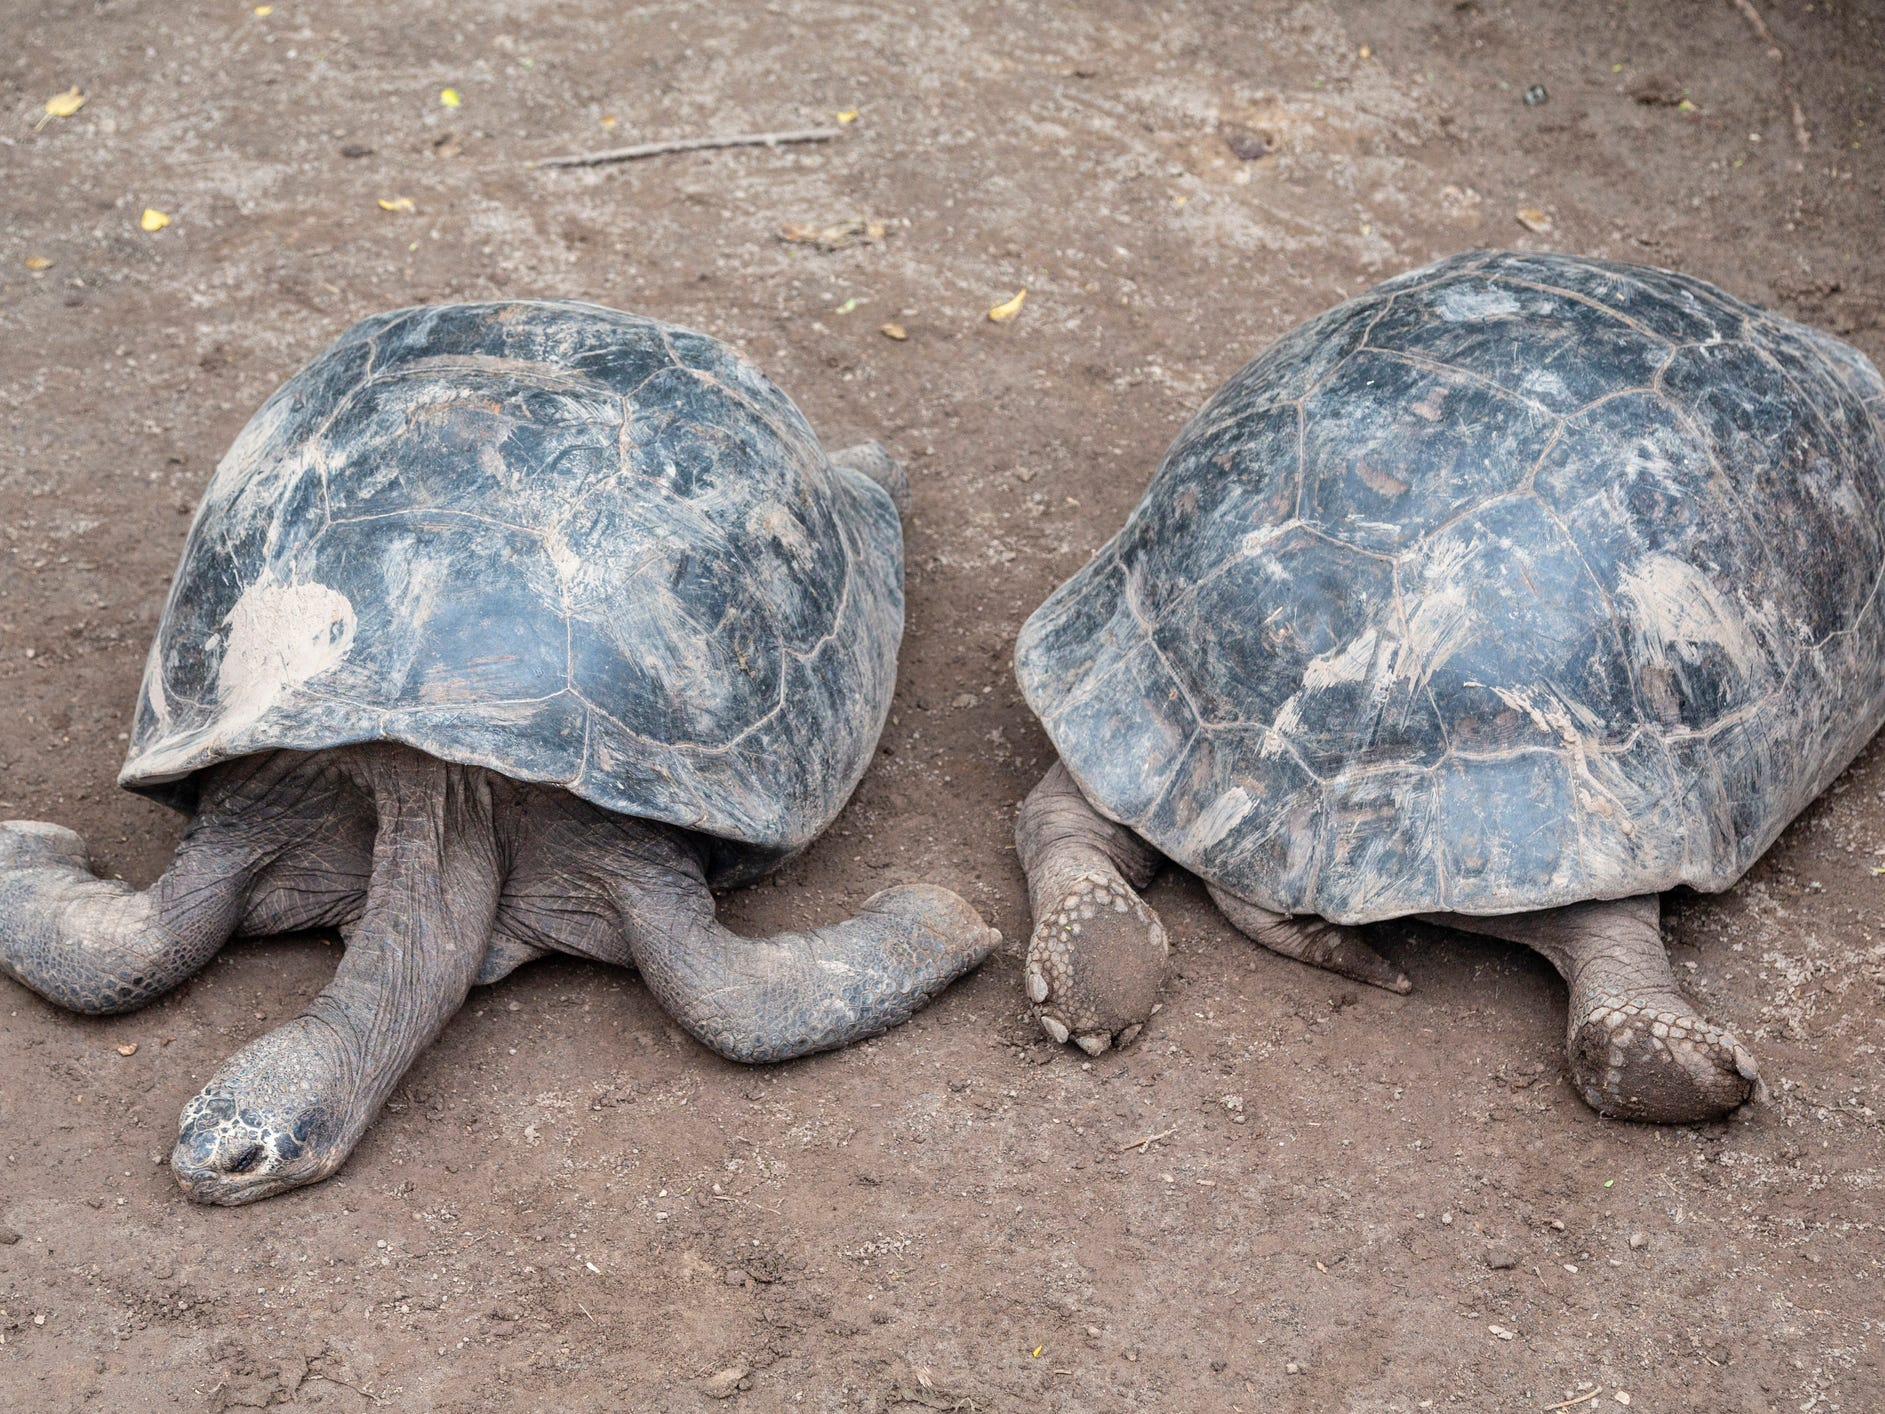 Giant tortoises in the Galapagos Islands, Ecuador.